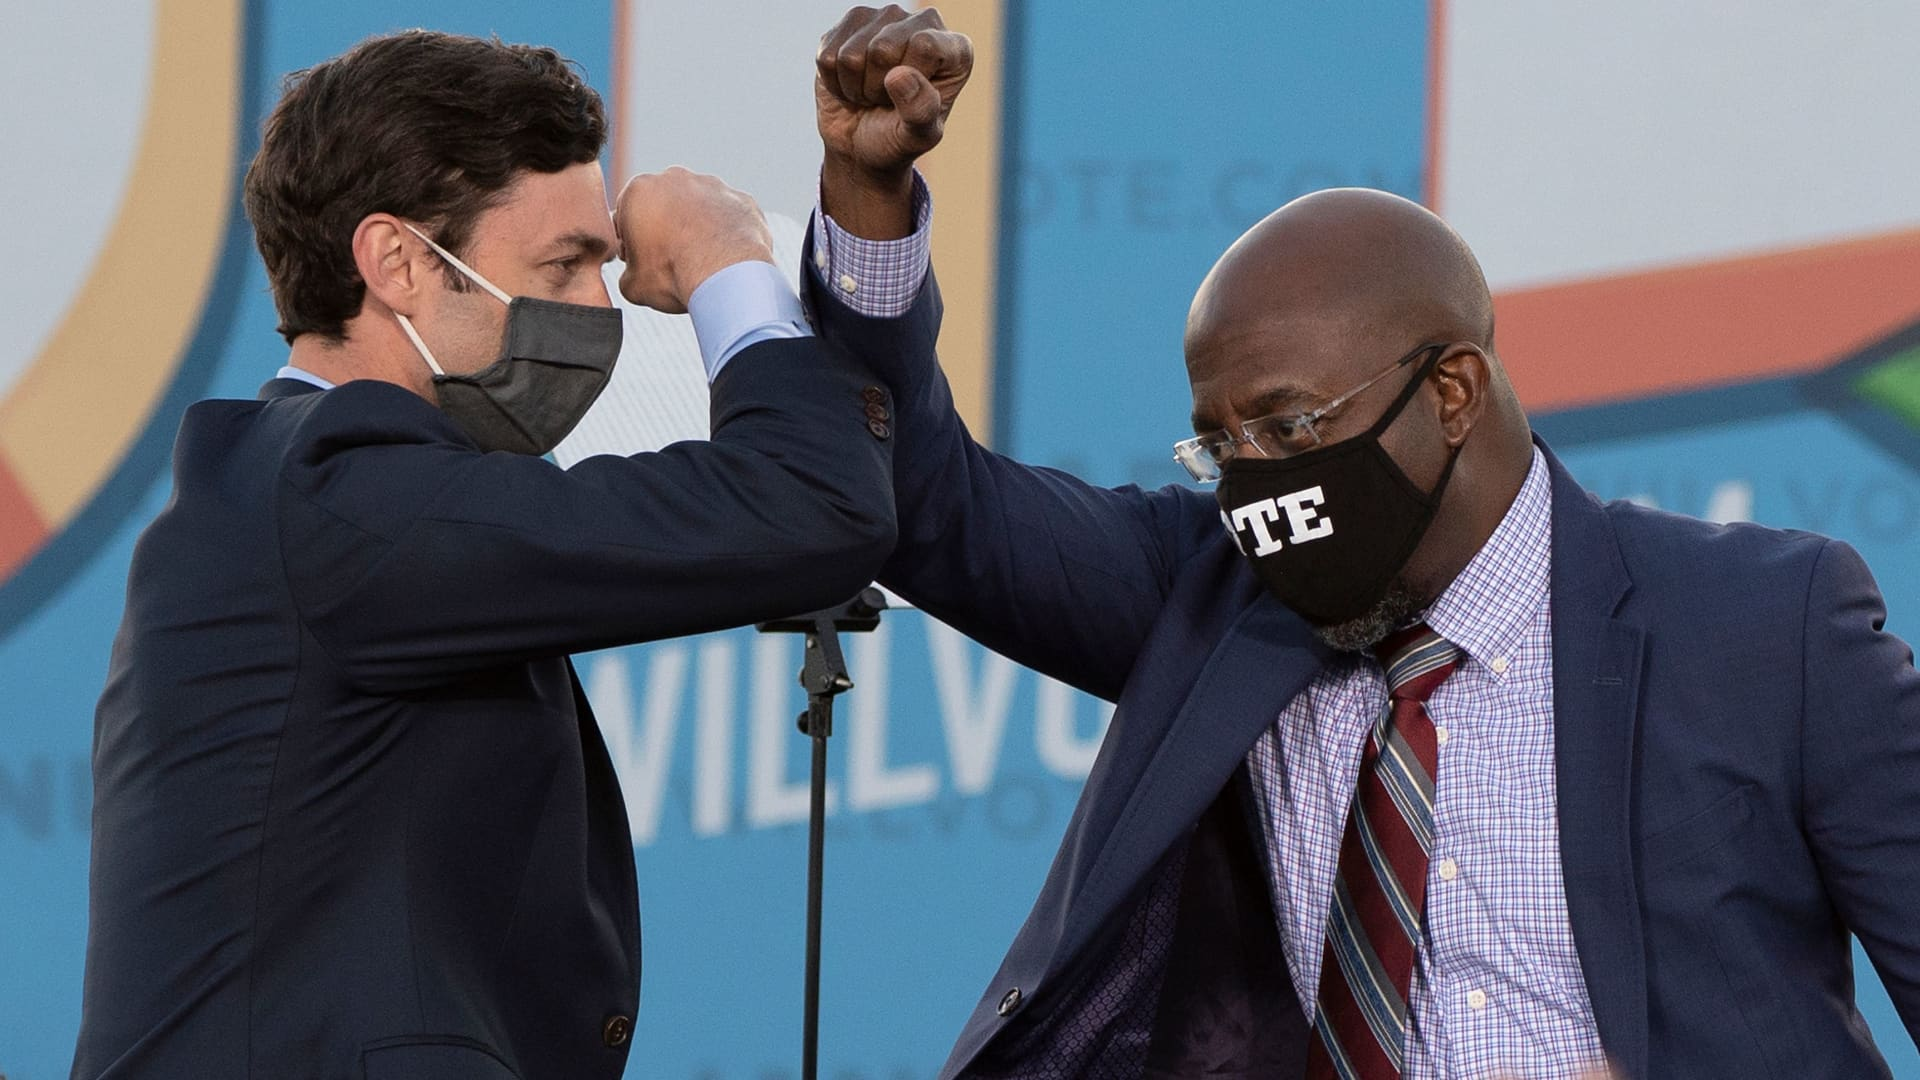 Democratic candidates for Senate Jon Ossoff (L) and Raphael Warnock (R) bump elbows on stage during a rally with US President-elect Joe Biden outside Center Parc Stadium in Atlanta, Georgia, on January 4, 2021.